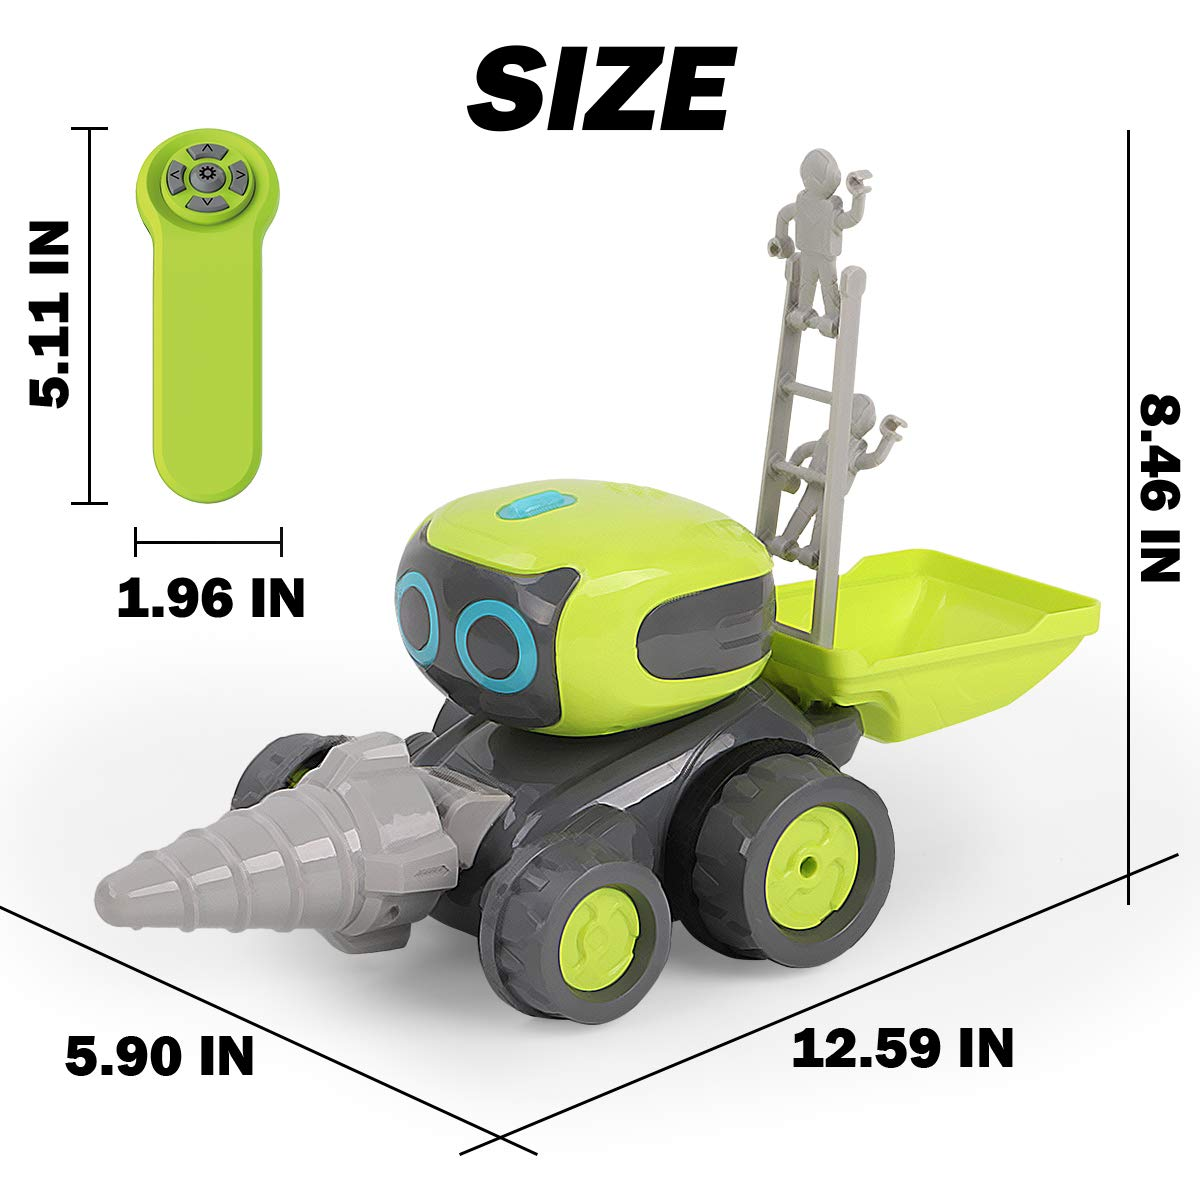 Remoking STEM RC Remote Control Engineering Robot Vehicle Toy, Smart Intelligent Electronic Educational Construction Car, Interactive Novelty Funny Gift of Building Block for Ages 3 and up by REMOKING (Image #6)